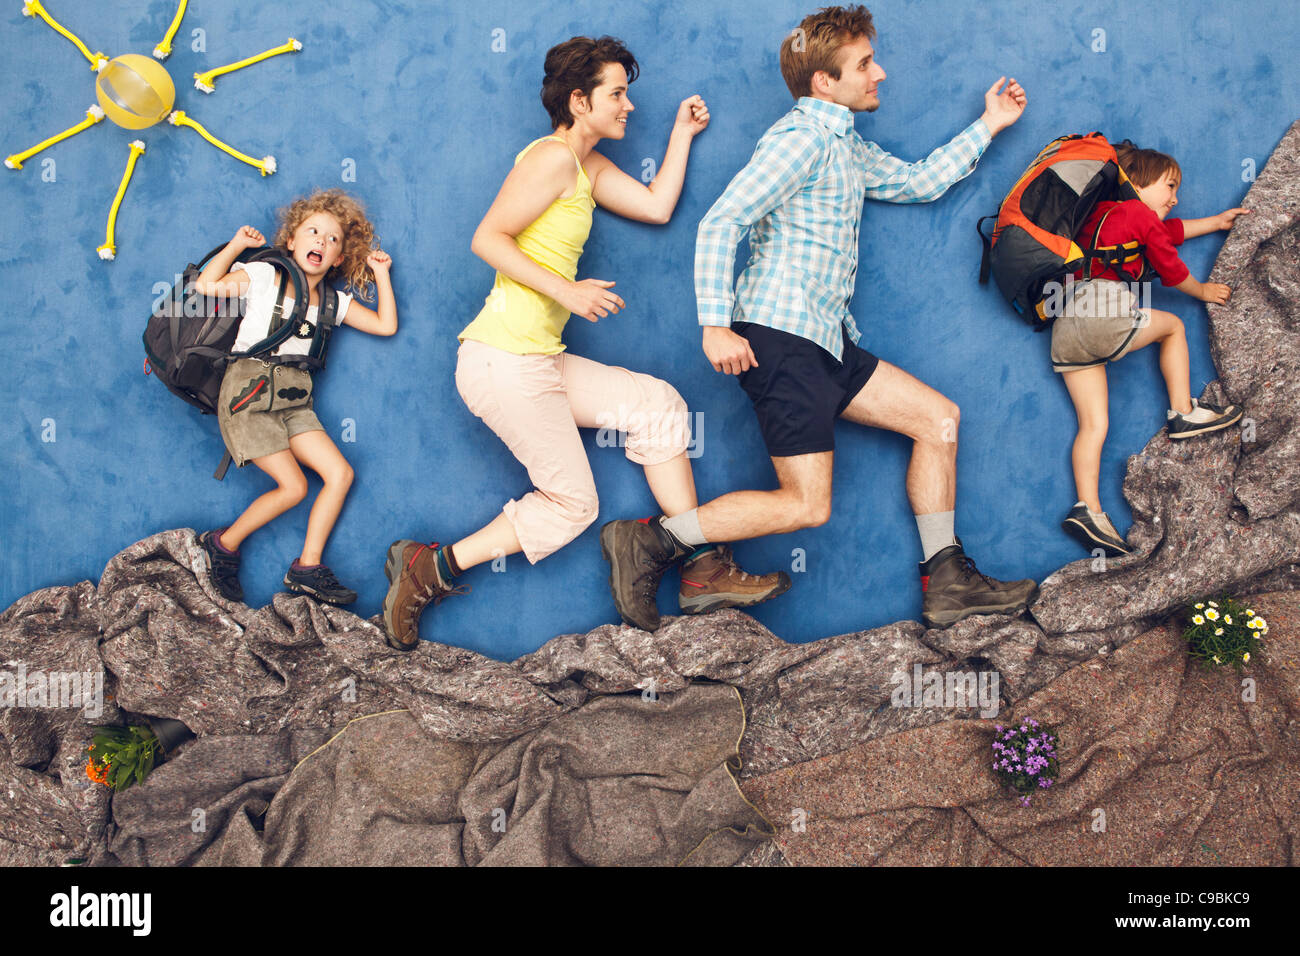 Germany, Artificial scene of family mountaineering - Stock Image